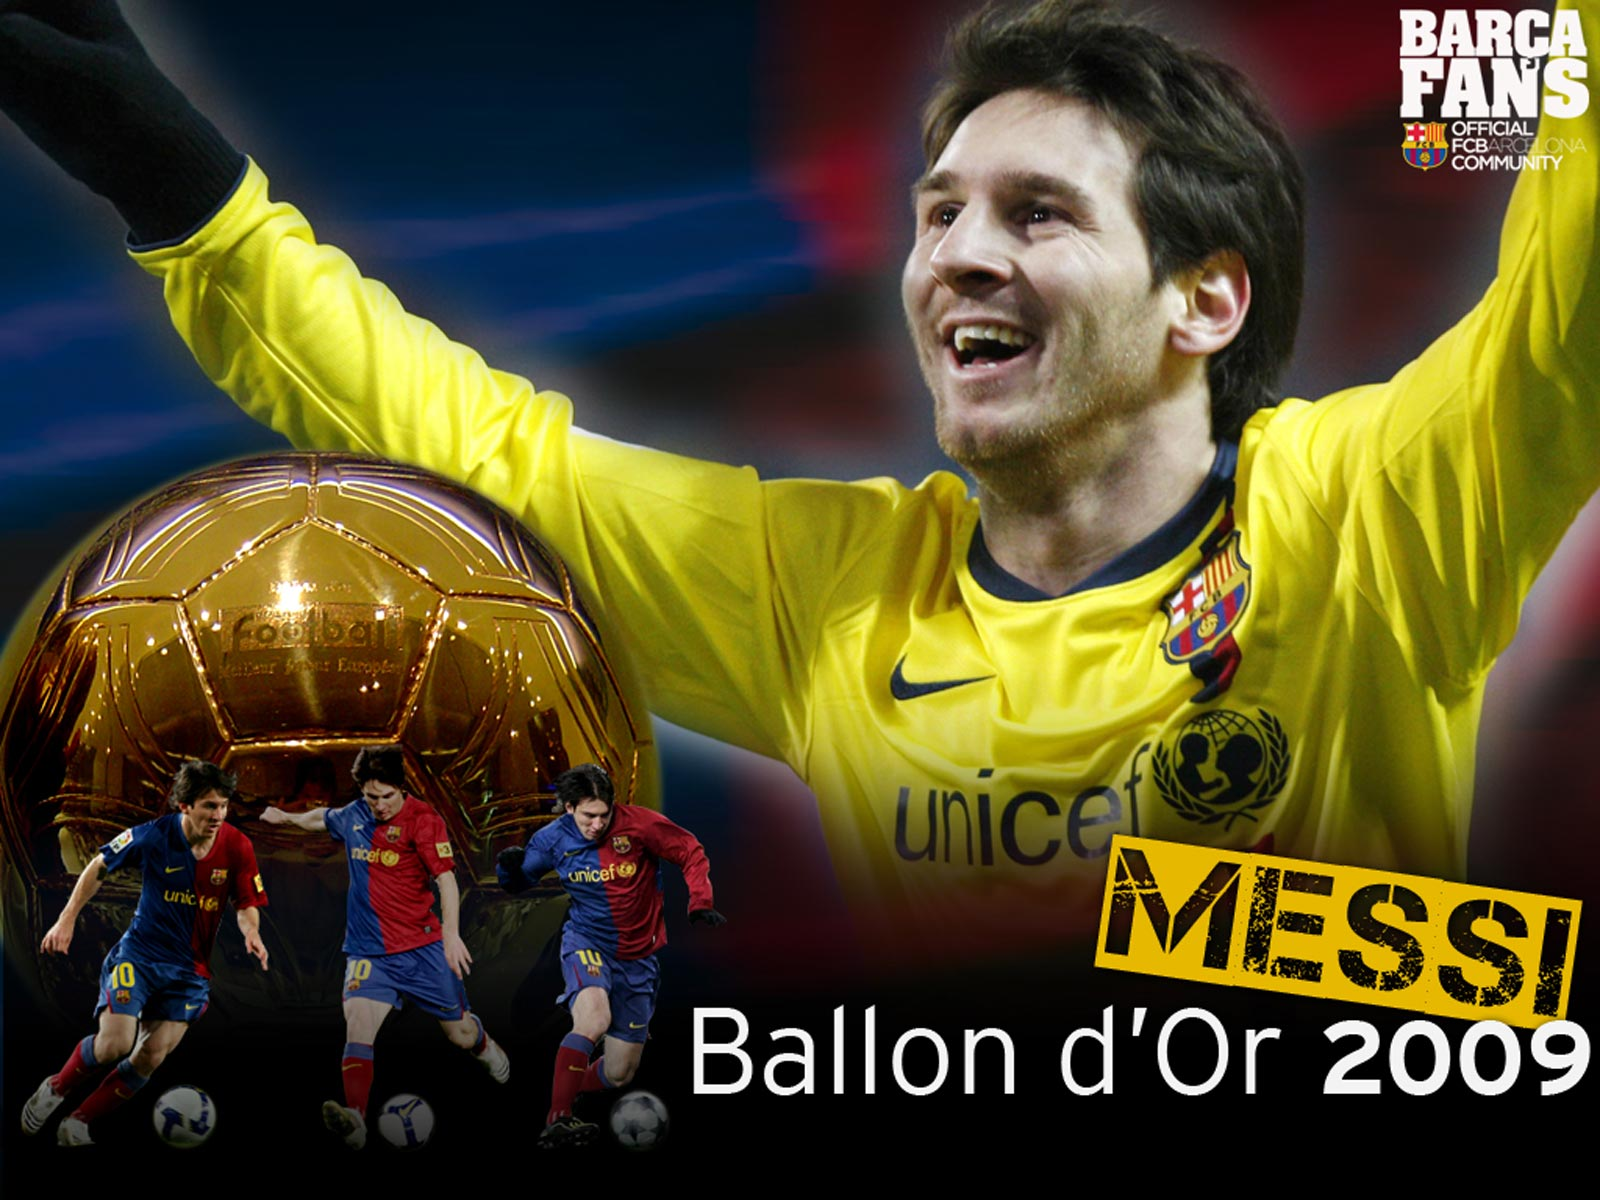 Lionel Messi Wallpaper 2011 28 Extreme teen vol.17